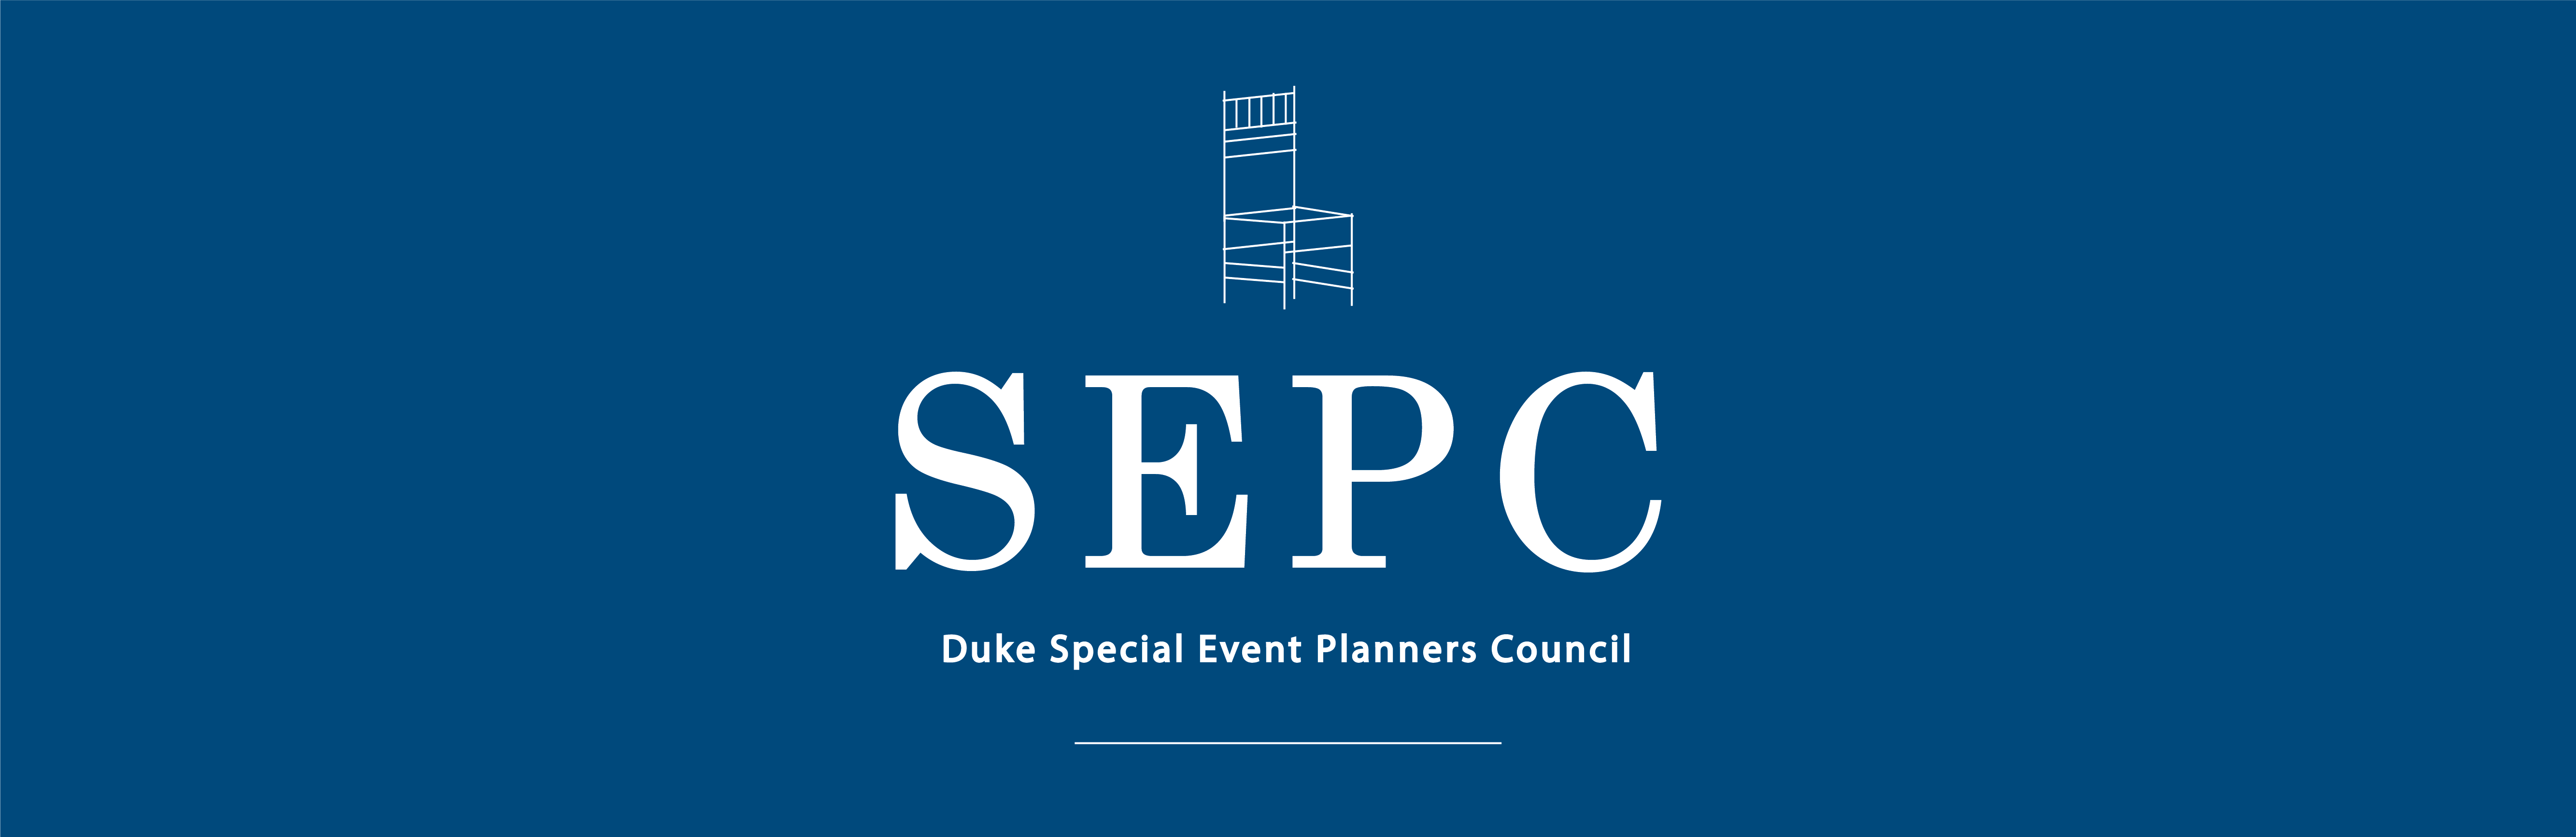 Duke Special Event Planners Council